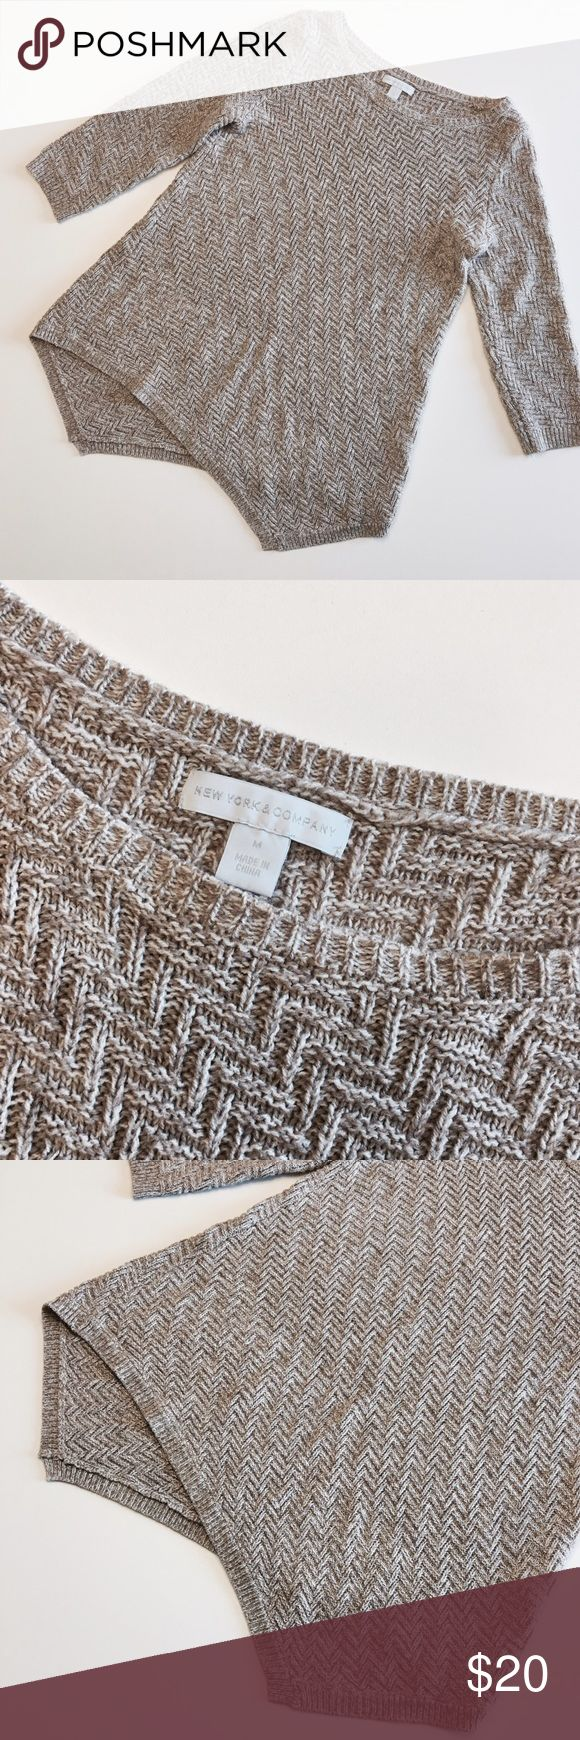 NY&Co. Sharkbite Sweater New York & Company Sharkbite Oatmeal Sweater  Super soft with an oversized fit, this sweater is sure to become your new favorite!  • New York & Company • Medium • Like New  Super soft. Beautiful texture. Oversized boyfriend fit. Flattering.   MSRP $58 New York & Company Sweaters Crew & Scoop Necks